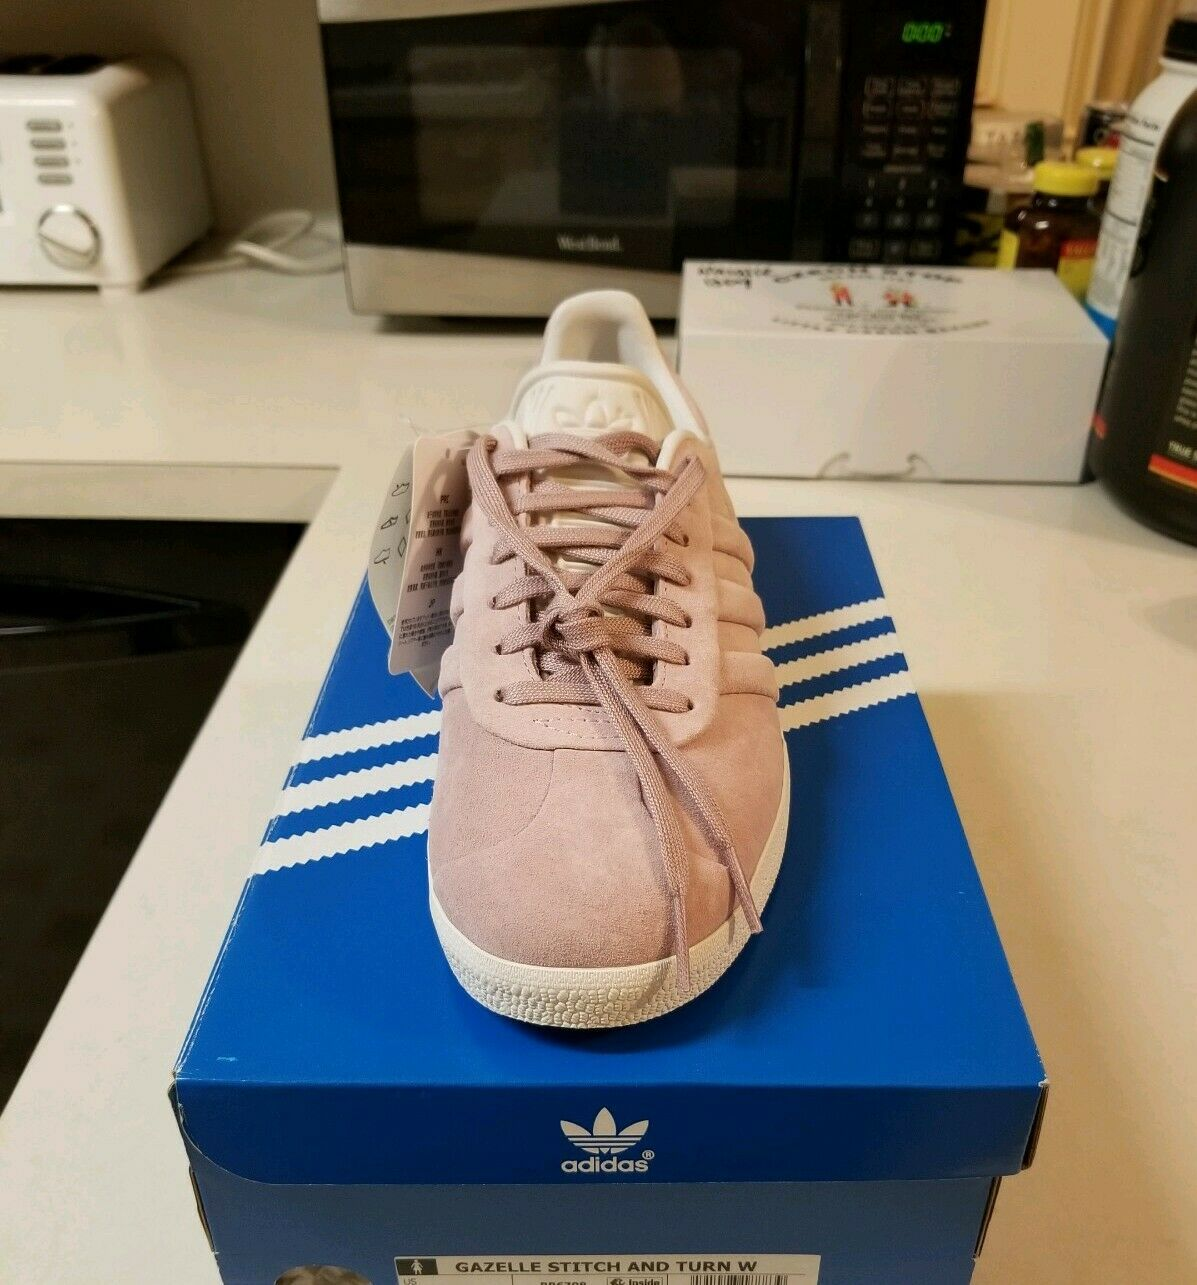 08dba4dfb ... New New New sz 8 Women s Adidas Gazelle Stitch and Turn Casual shoes  Pink White a73e8e ...